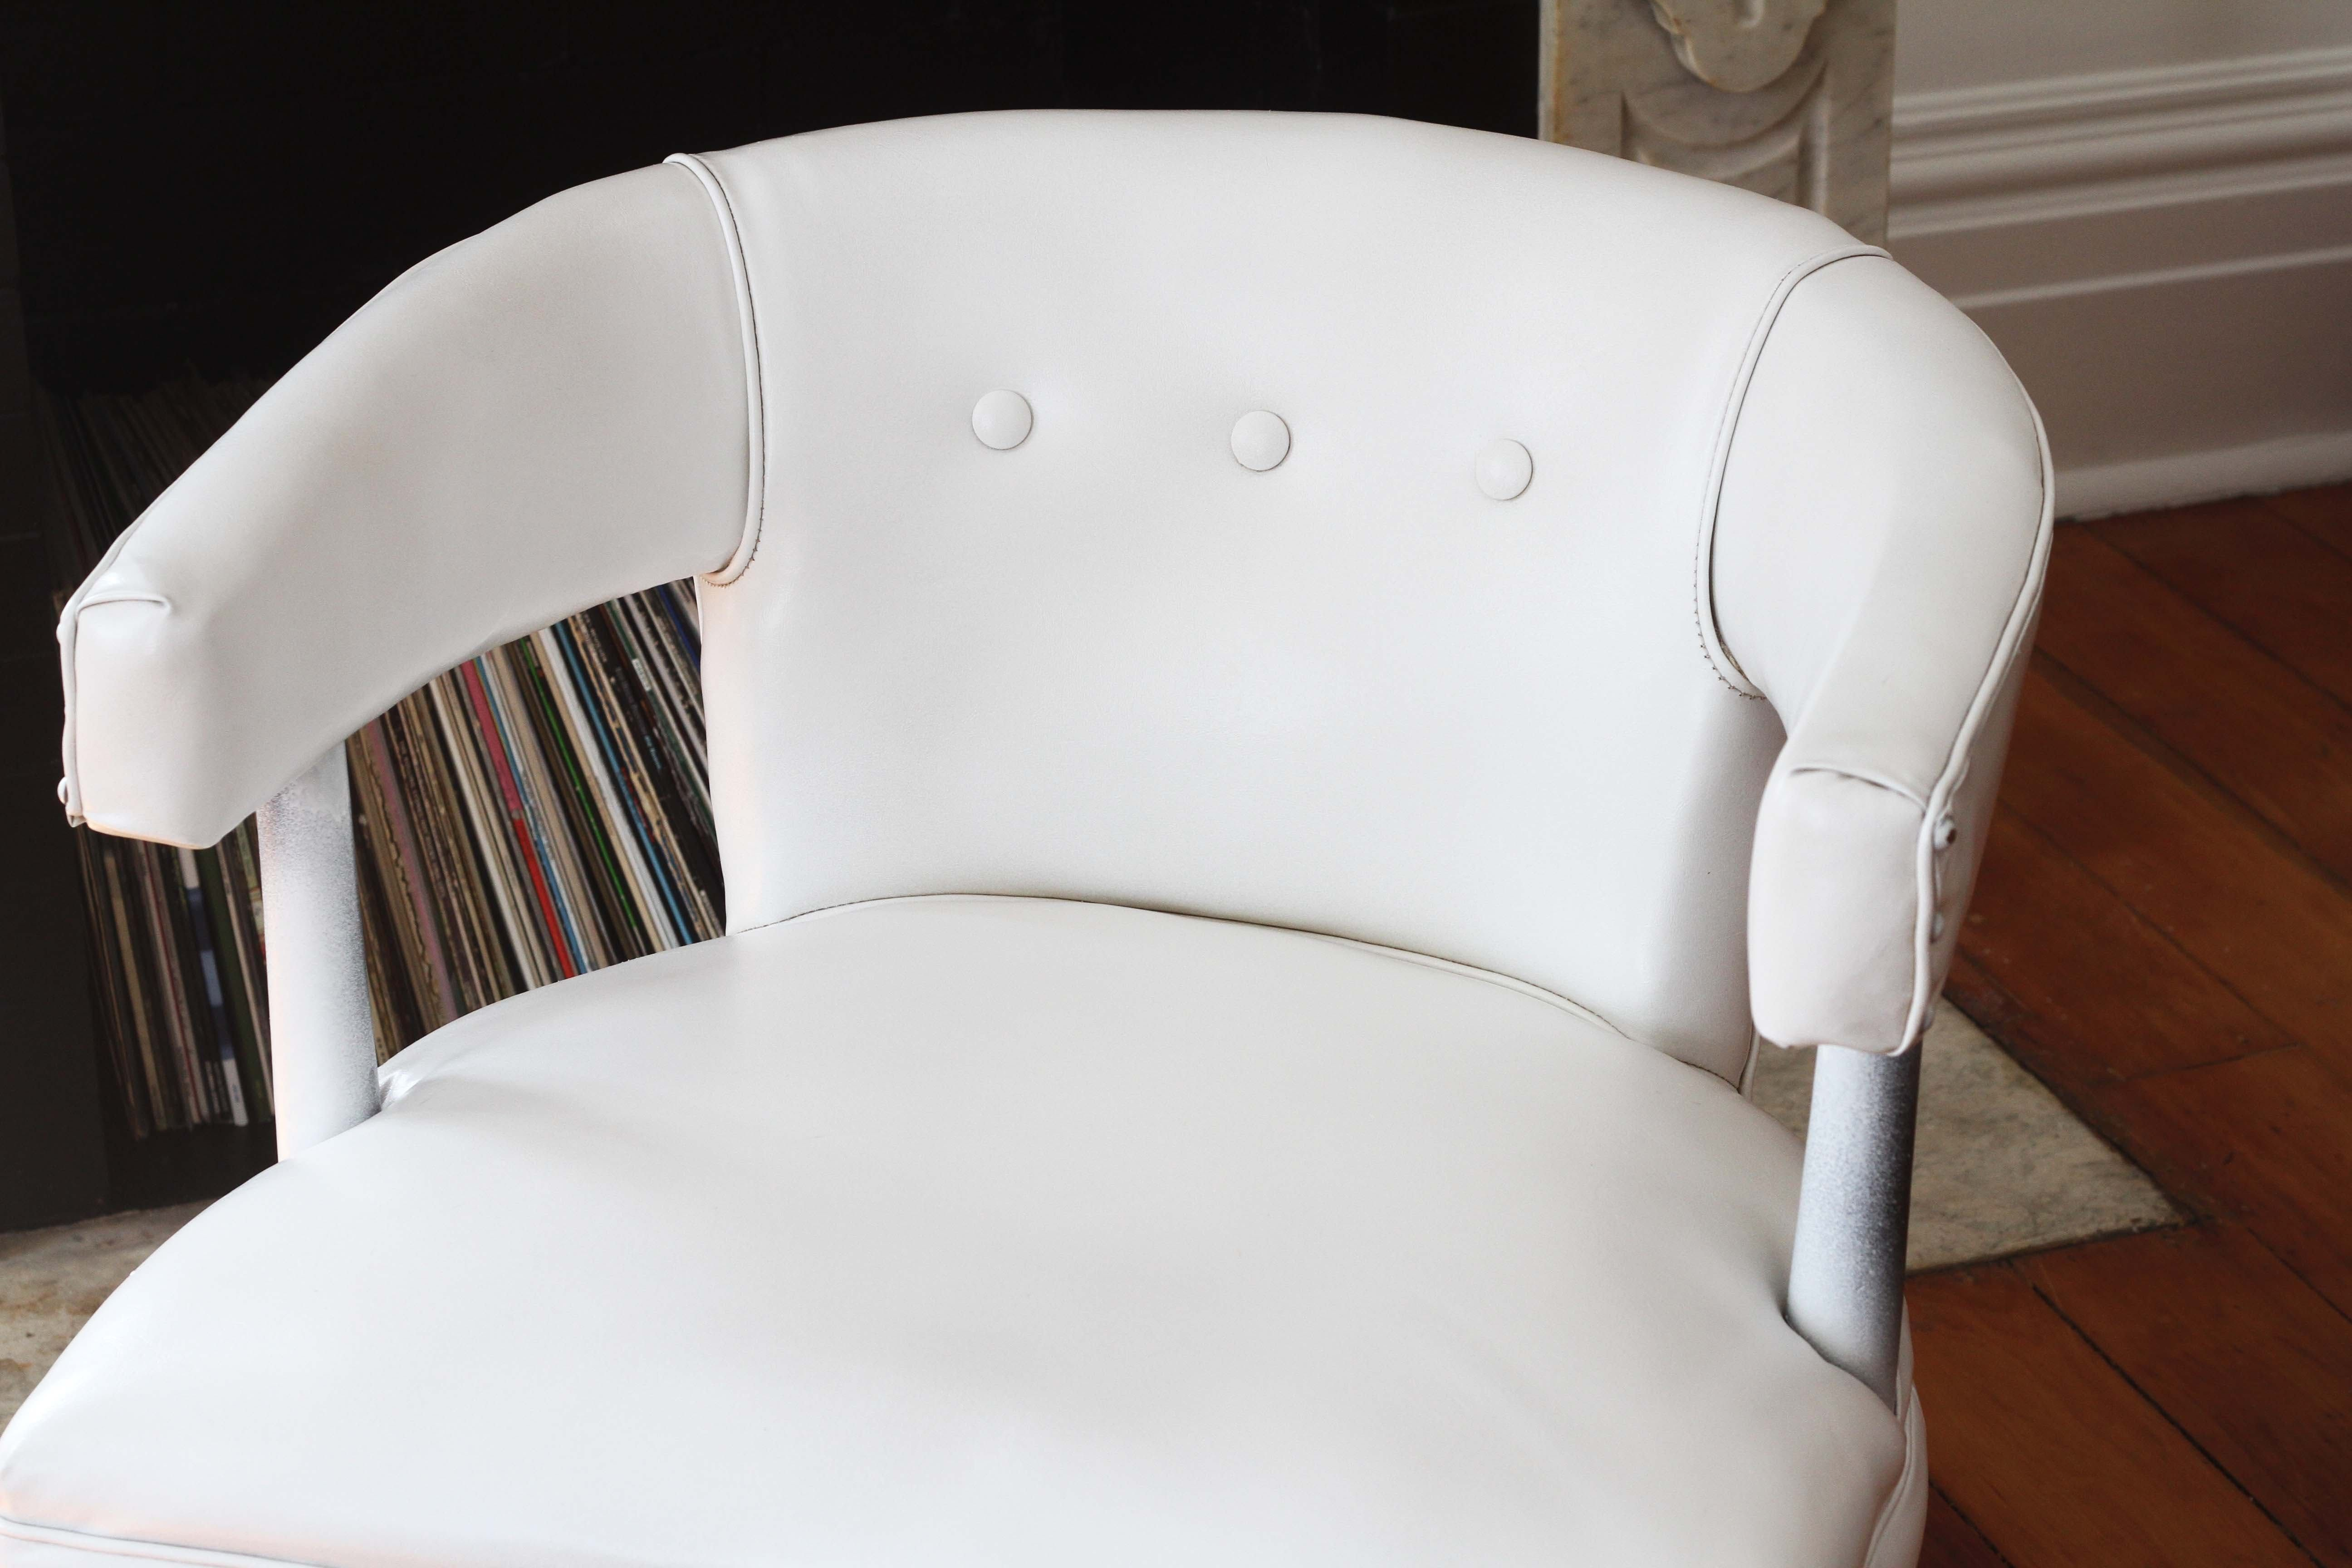 DIY Project Test Lab Results: We Tried 3 Vinyl Upholstery Spray Paints and  Here's What